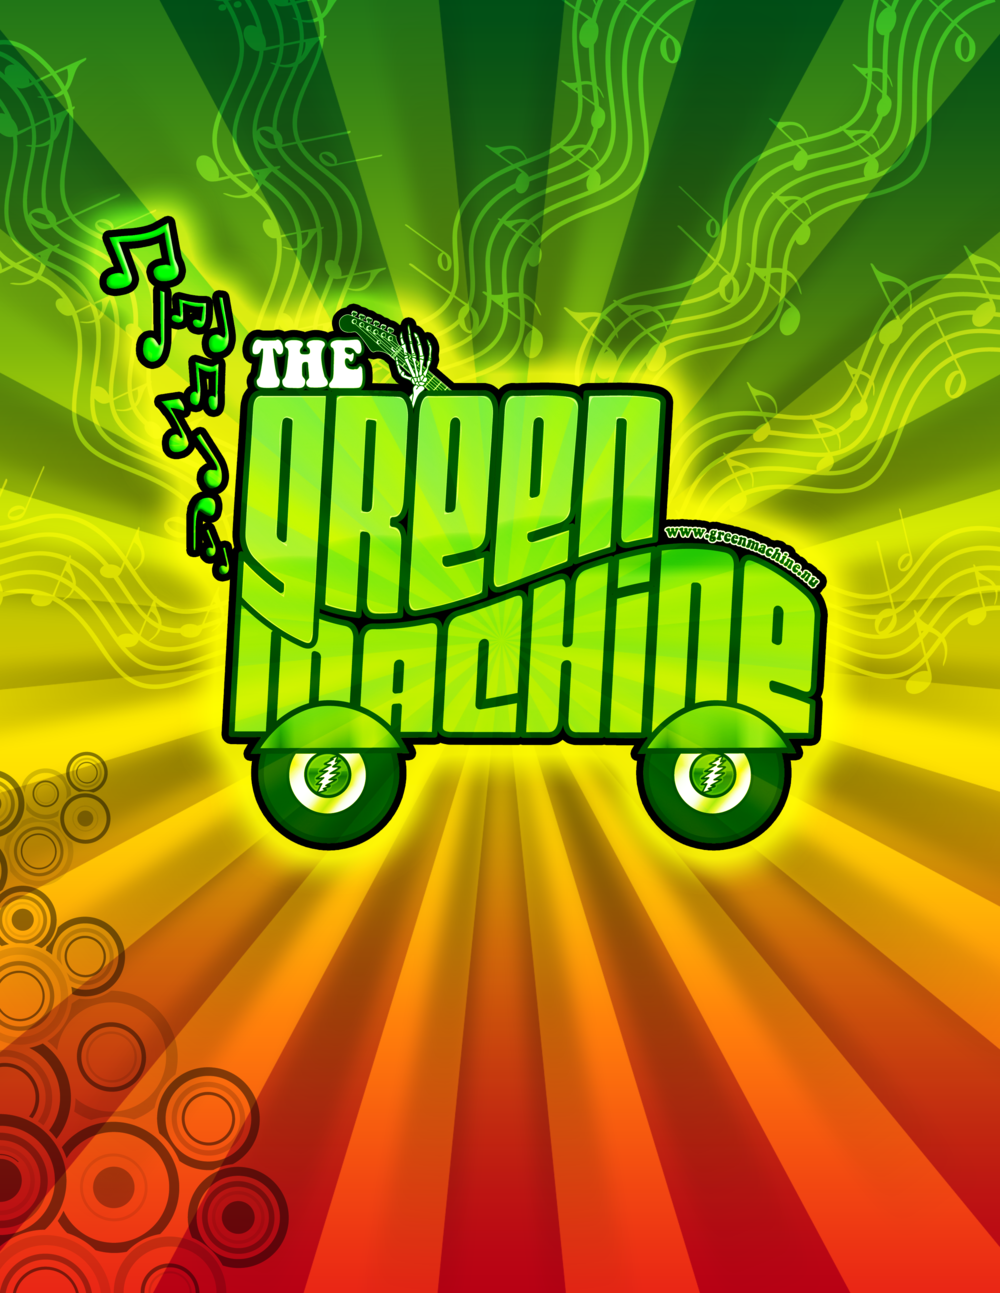 - Rock out with The Green Machine at Queen's Inn and Wine & Beer Garden. The bar opens at 4:00 pm and music will begin at 6:30 pm. Food is available to purchase at this event. No outside food or beverages permitted. 21+ only please. LEARN MORE